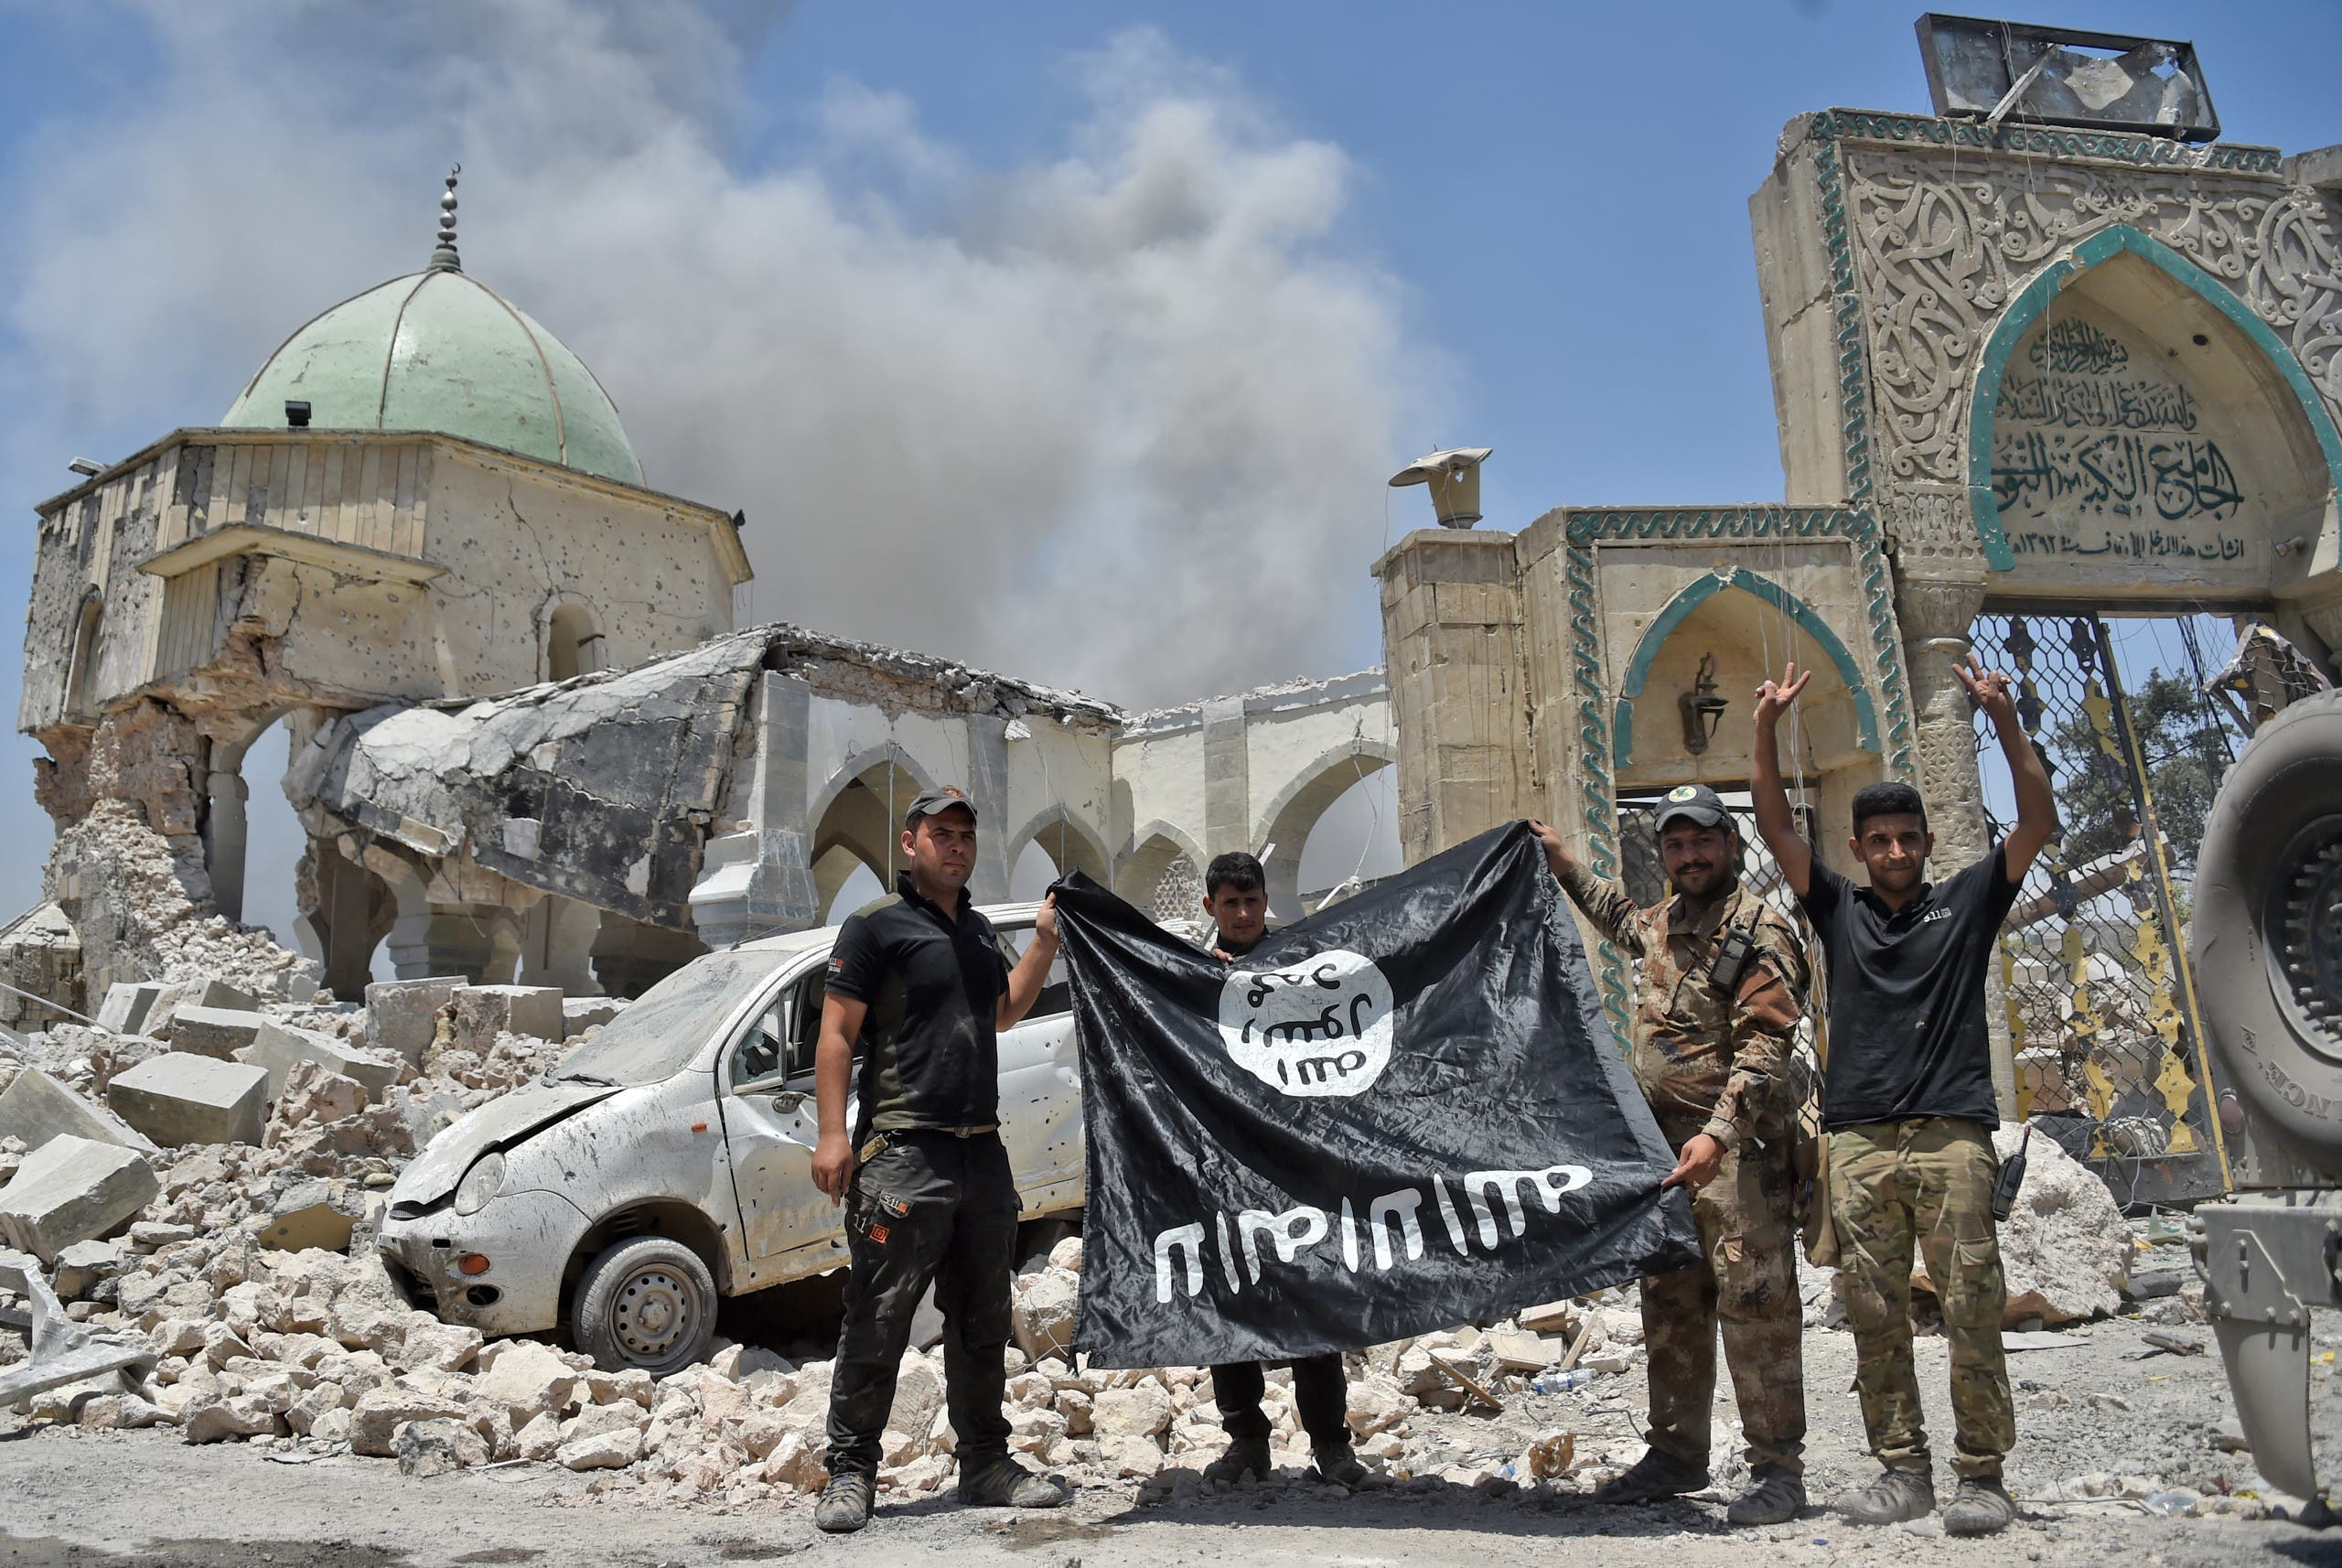 A member of the Iraqi Counter-Terrorism Service (CTS) raises the victory gesture as others hold upside-down the black flag of the Islamic State (IS) group, outside the destroyed Al-Nuri Mosque in the Old City of Mosul, after the area was retaken from IS, on June 30, 2017.(AFP)